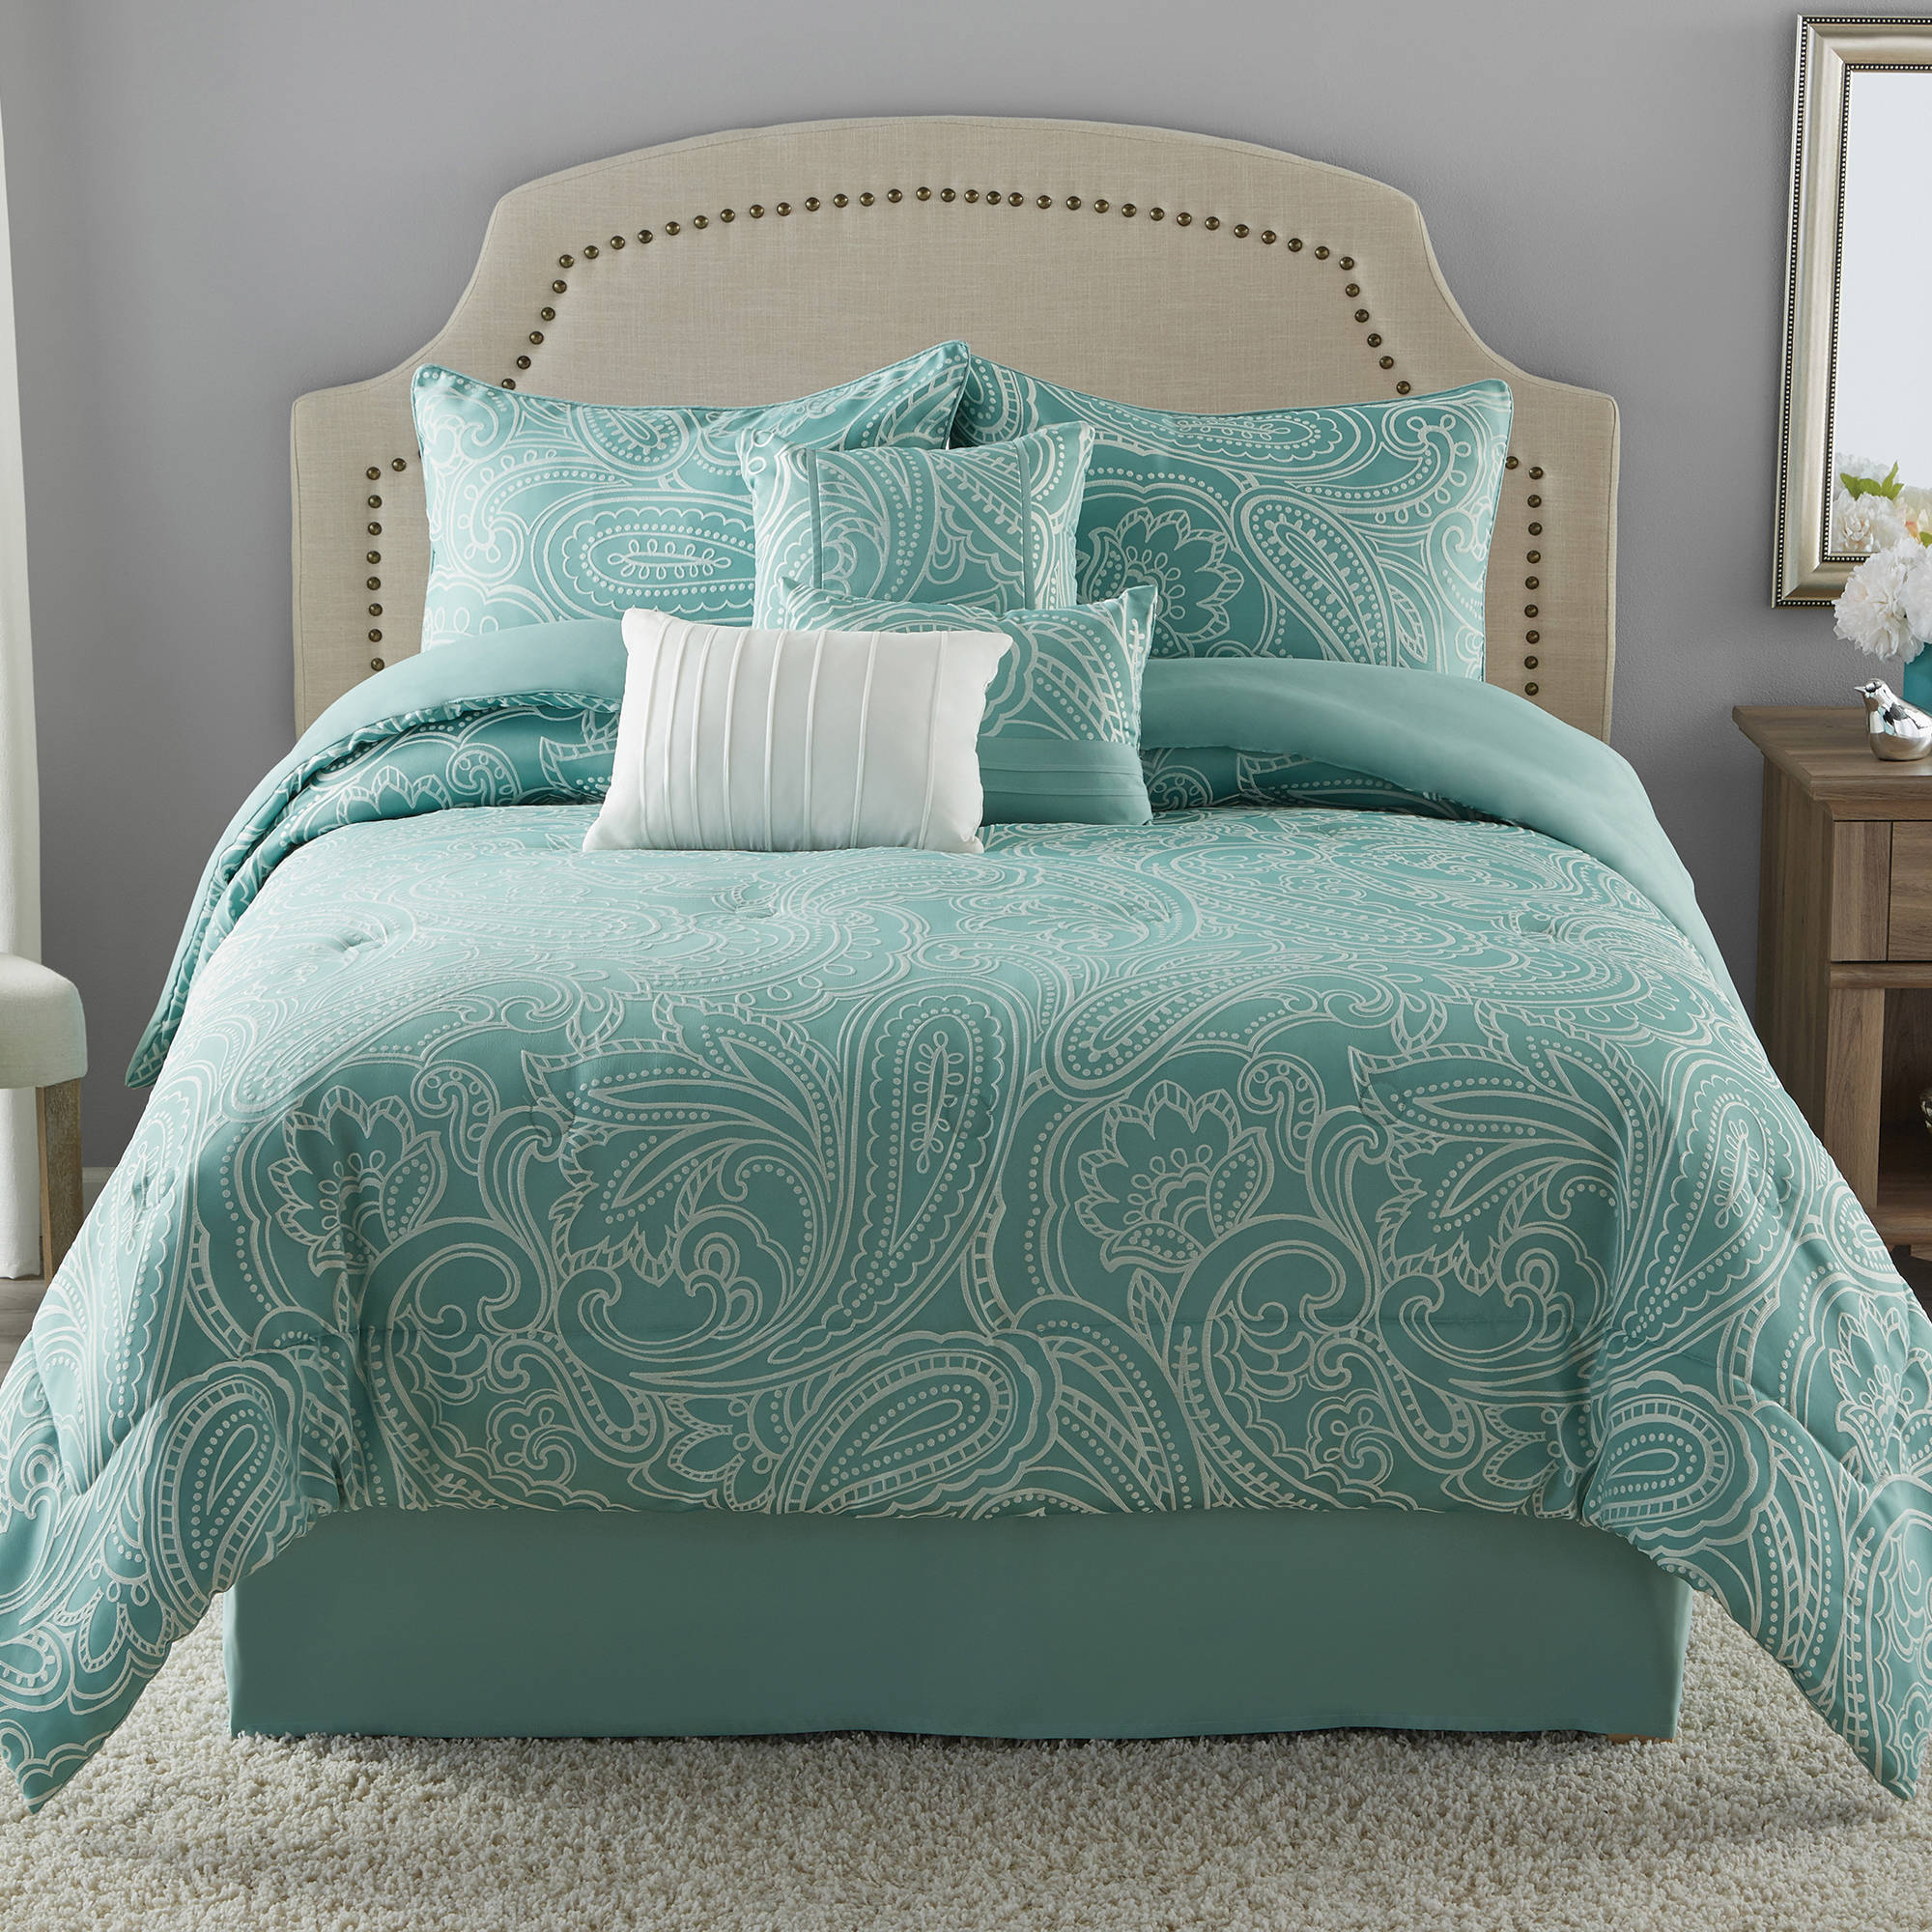 Mainstays Full or Queen Paisley Jacquard Comforter Set, 7 Piece